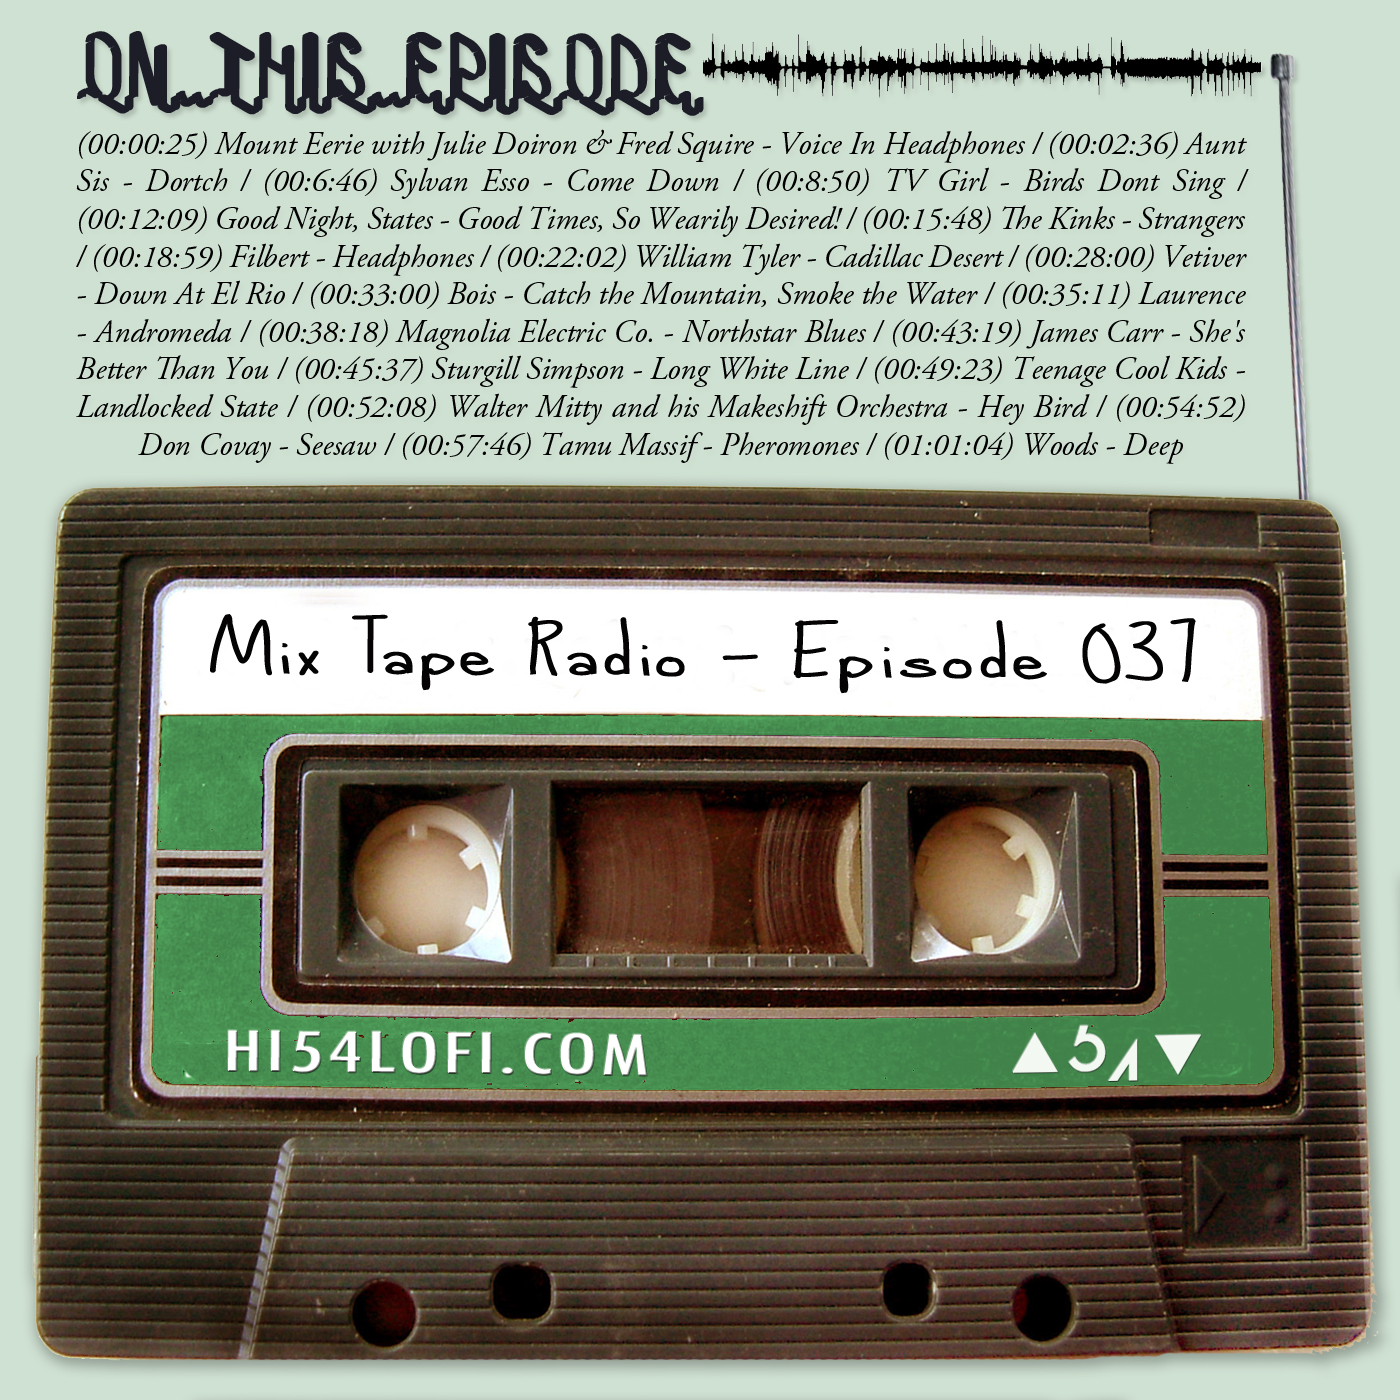 Episode 037 was put together after returning to the UK from a vacation in Spain. Back when I used to live in the UK (circa 2014). It's also the most listened to Mix Tape Radio episode ever. Do with that information what you will. - - JEREMY / @HI54LOFI